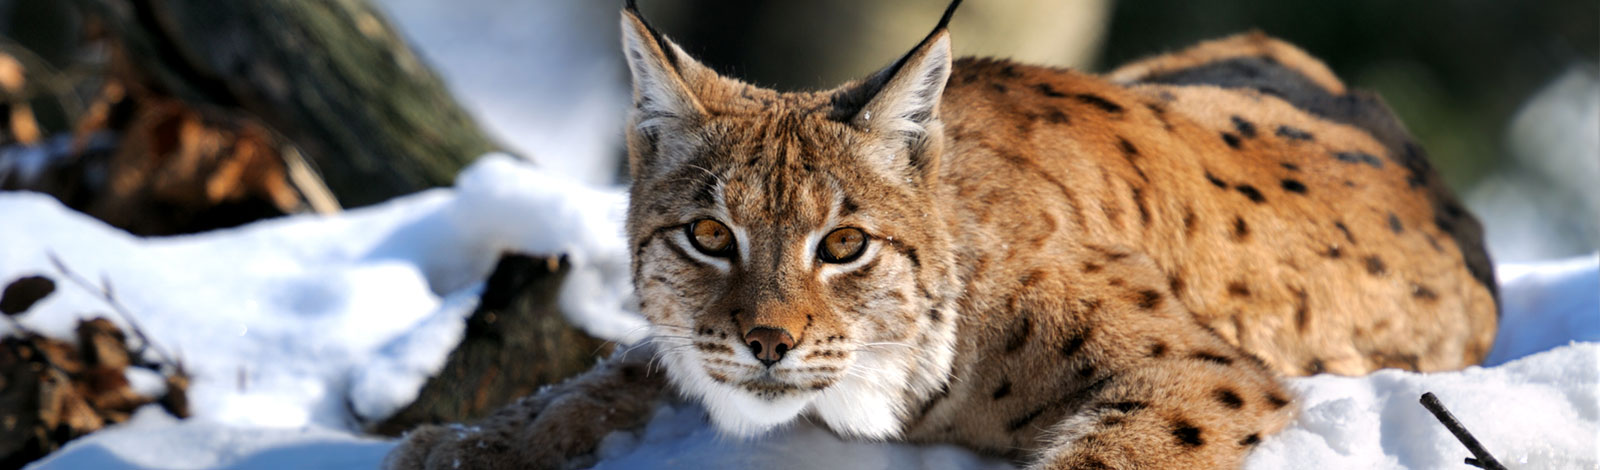 Slider-Luchs-Winter